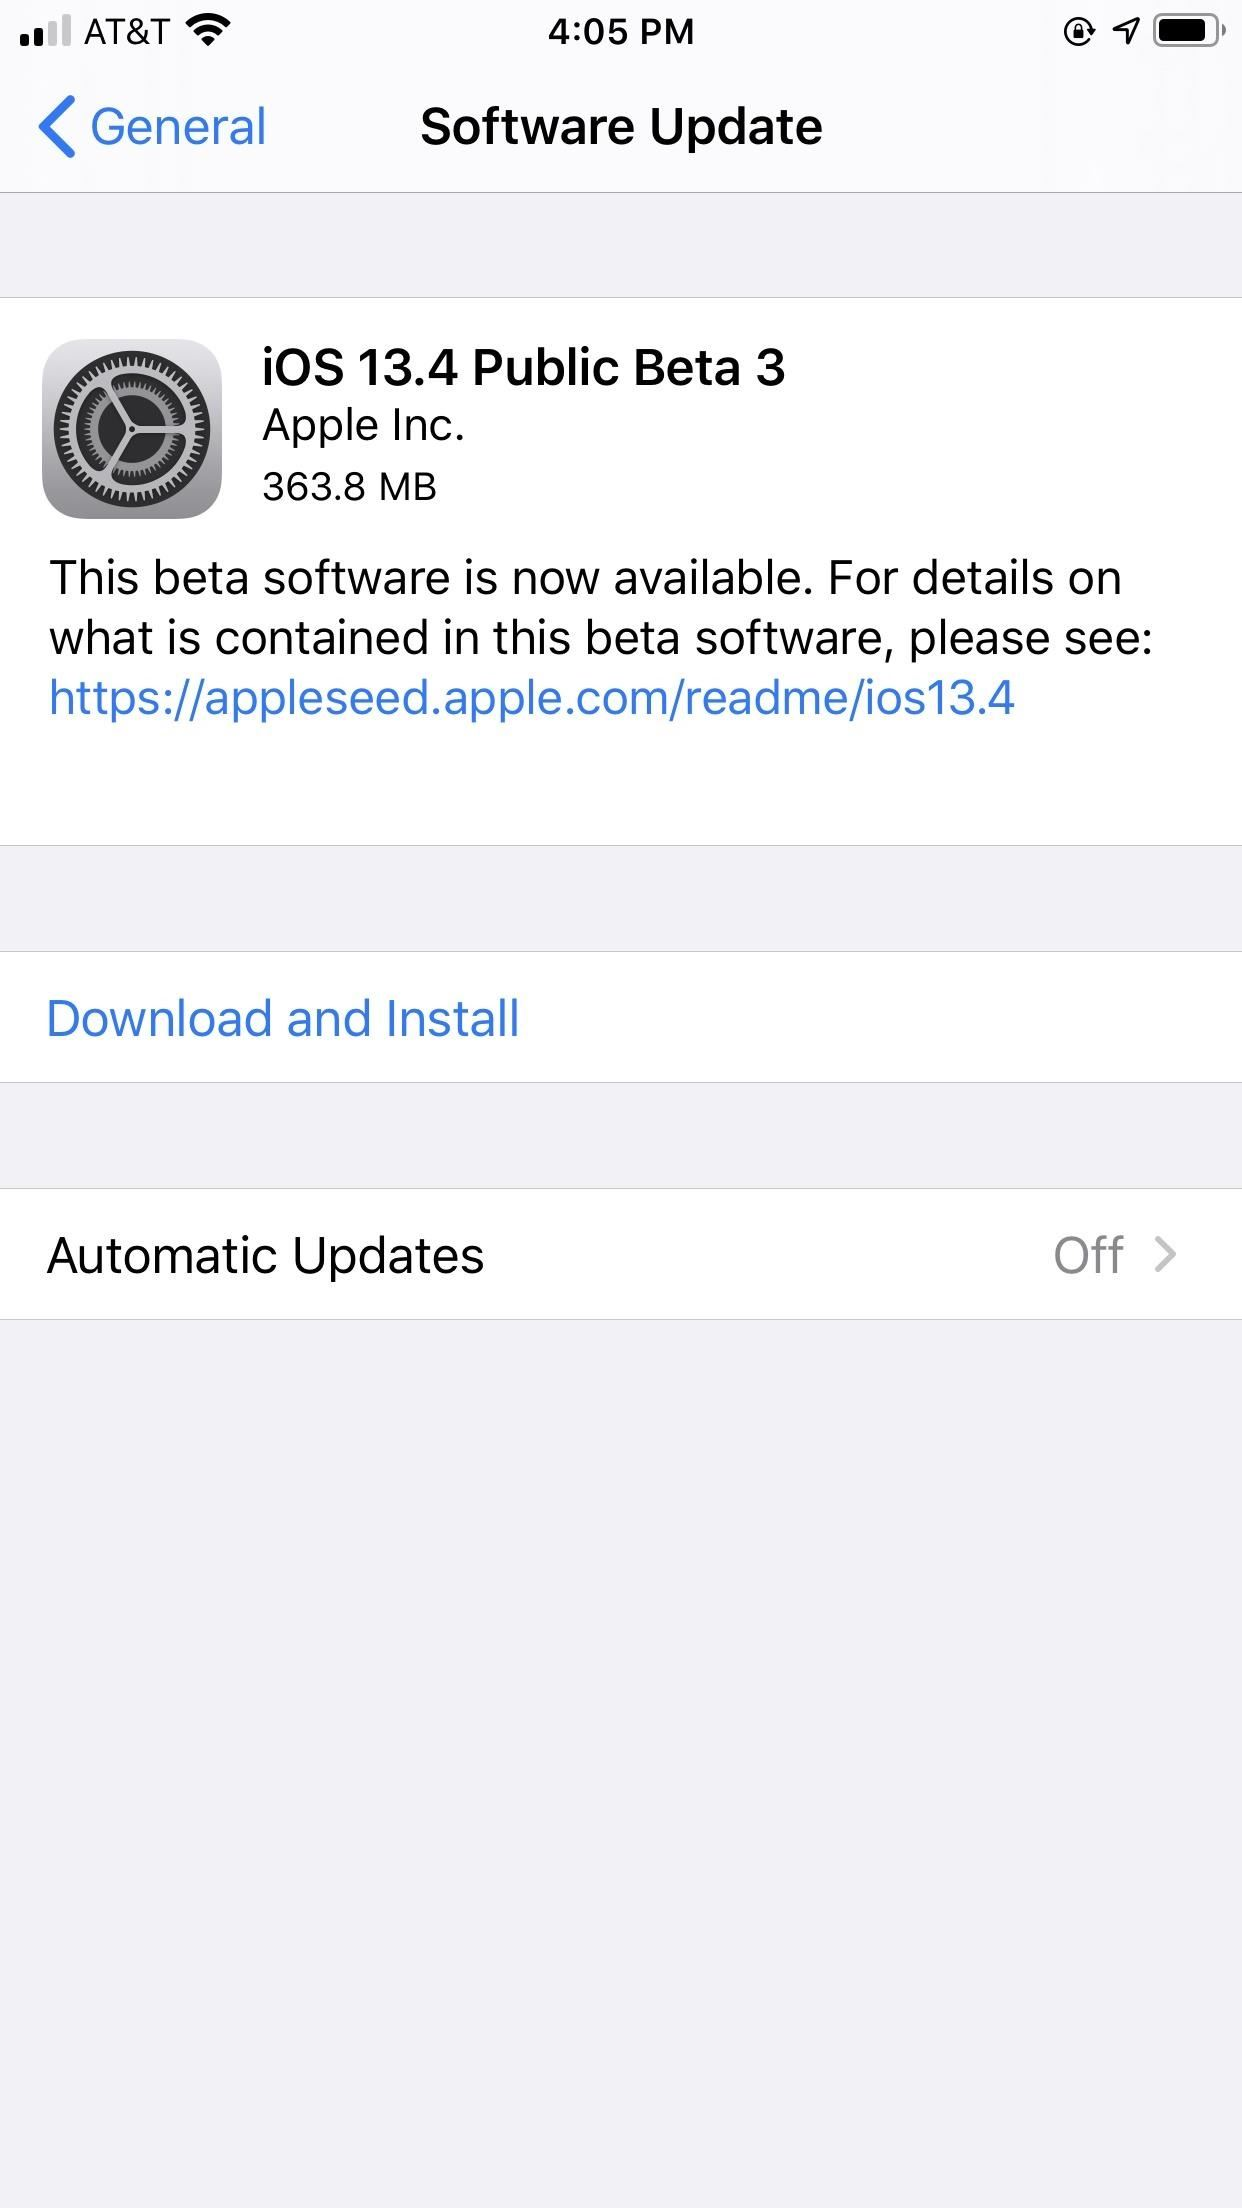 Apple Releases iOS 13.4 Public Beta 3 for iPhone, Tips for Future & # 39; OS Recovery & # 39; Mode